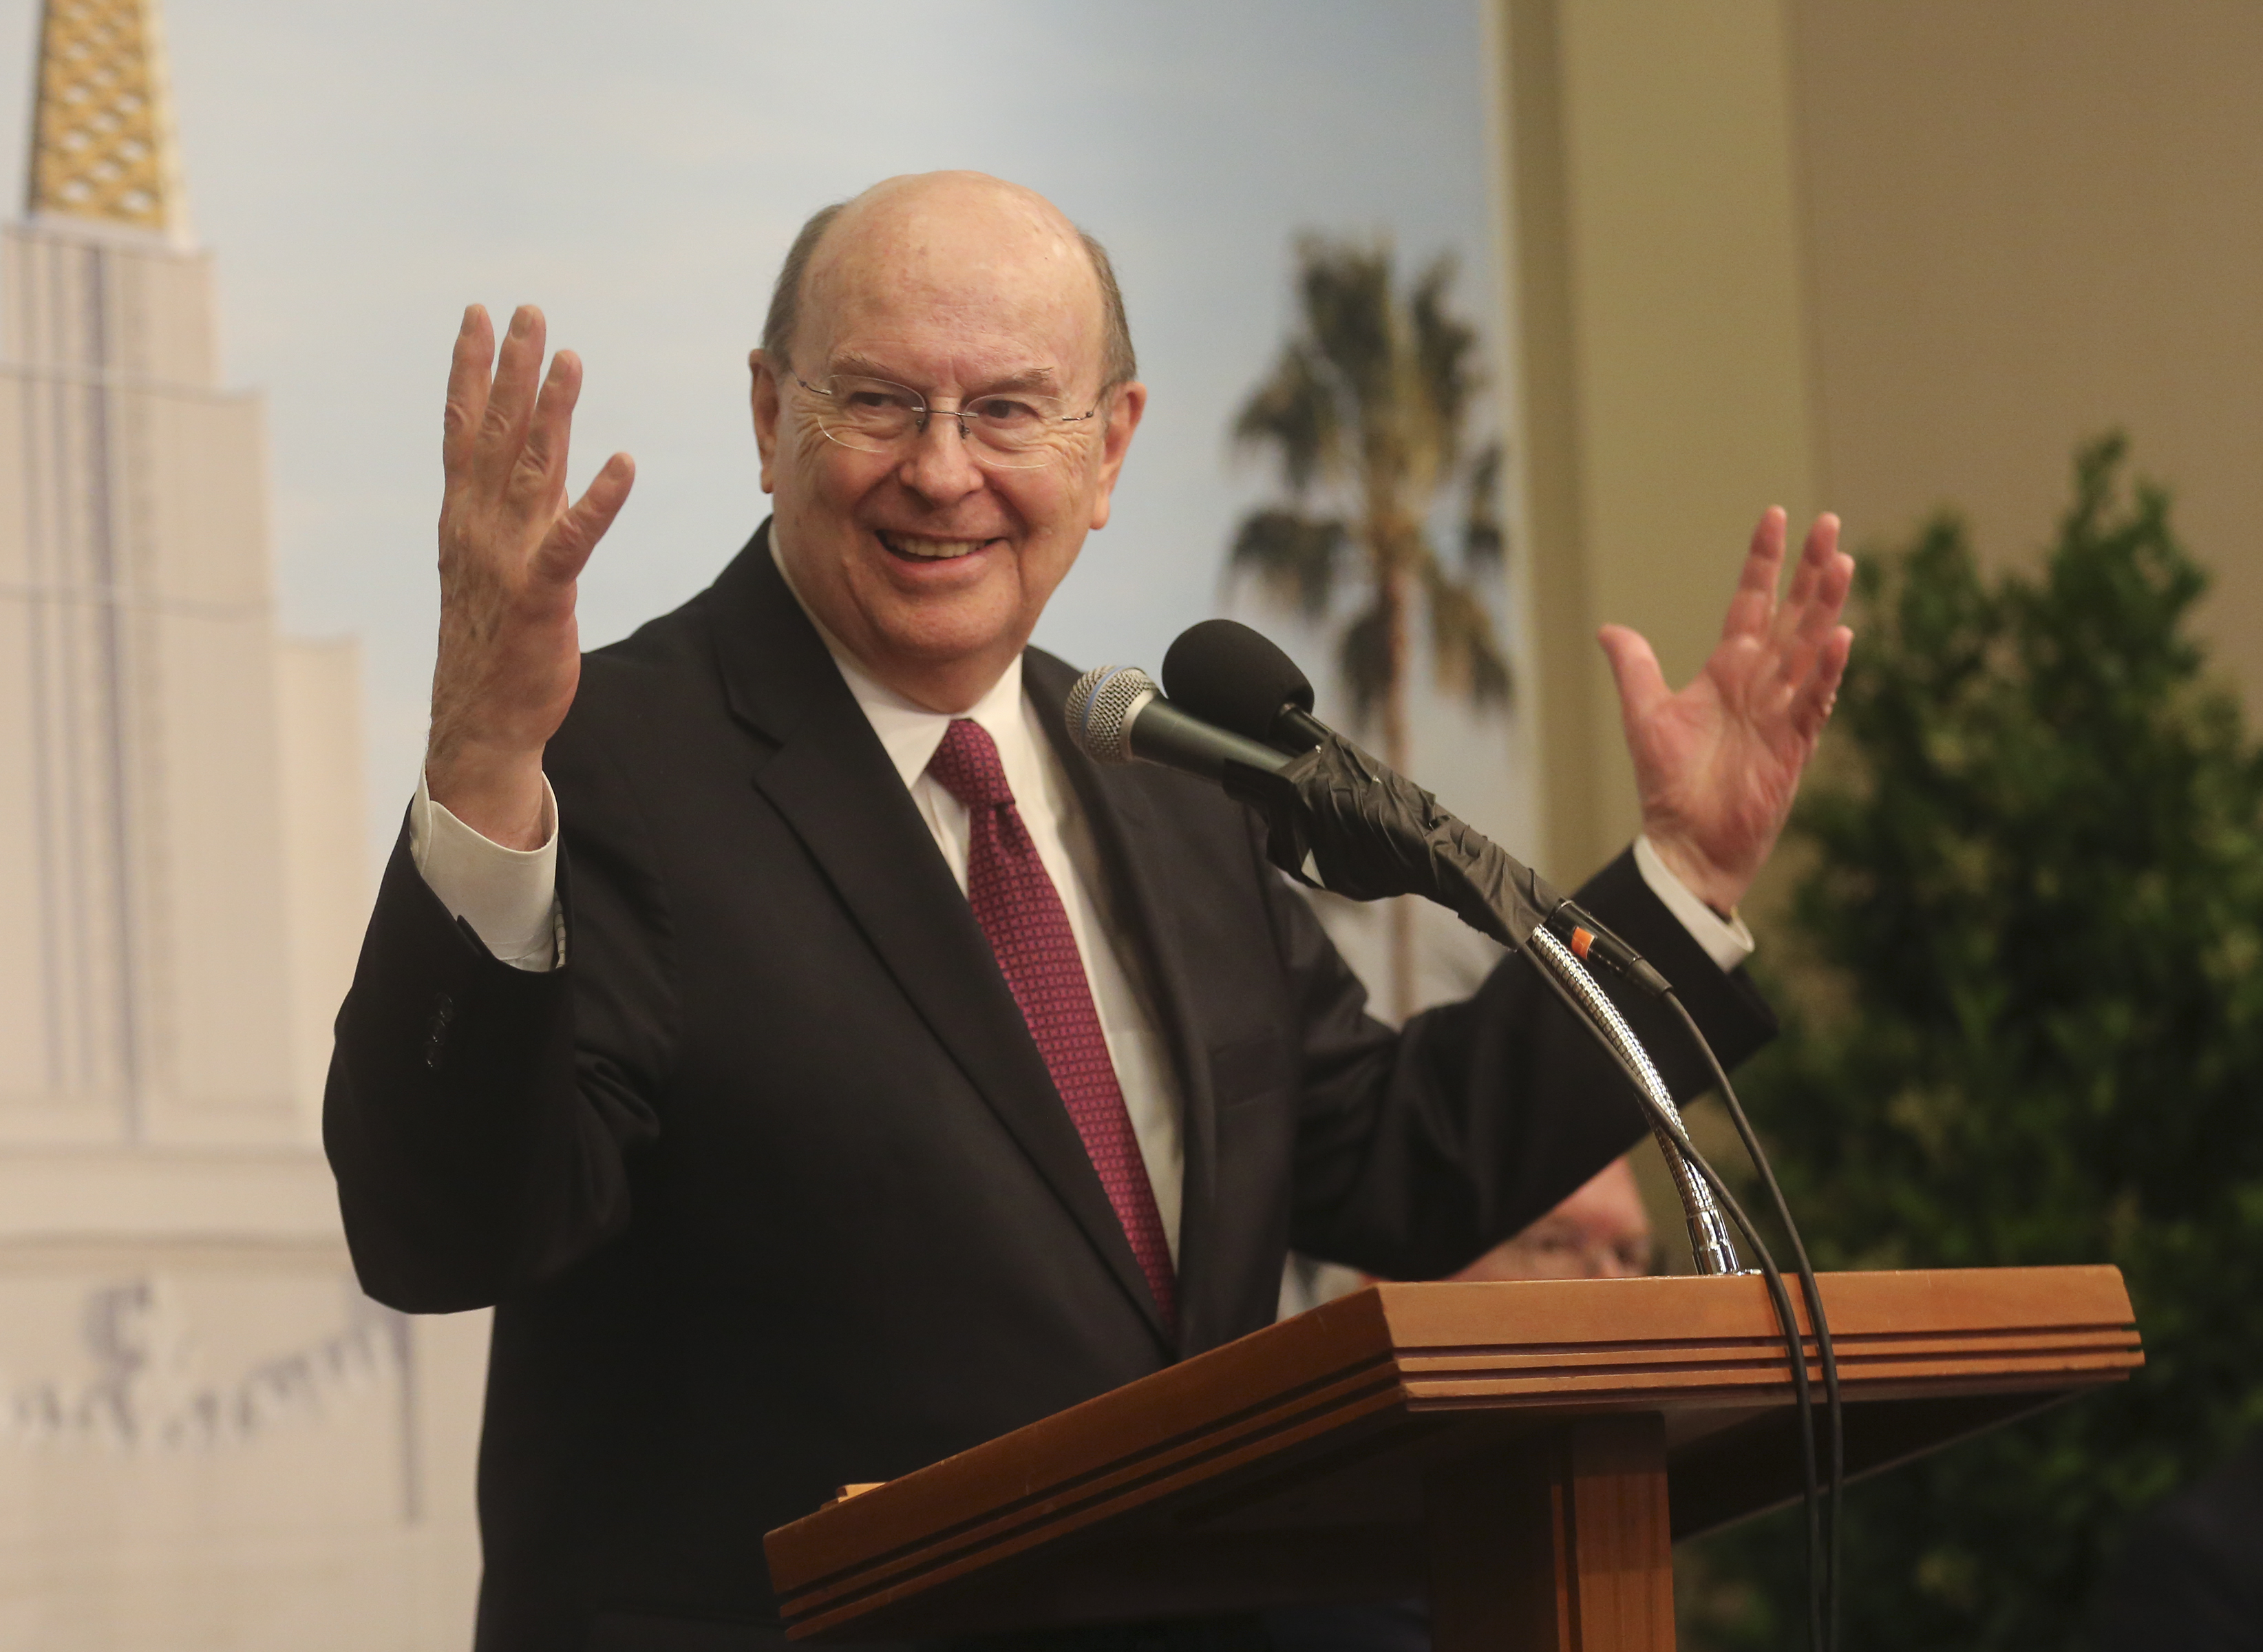 Elder Quentin L. Cook, of the Quorum of the Twelve Apostles, speaks about the newly renovated Oakland California Temple, of The Church of Jesus Christ of Latter-day Saints, during a news conference held in the visitors' center in Oakland, Calif., on Monday, May 6, 2019.